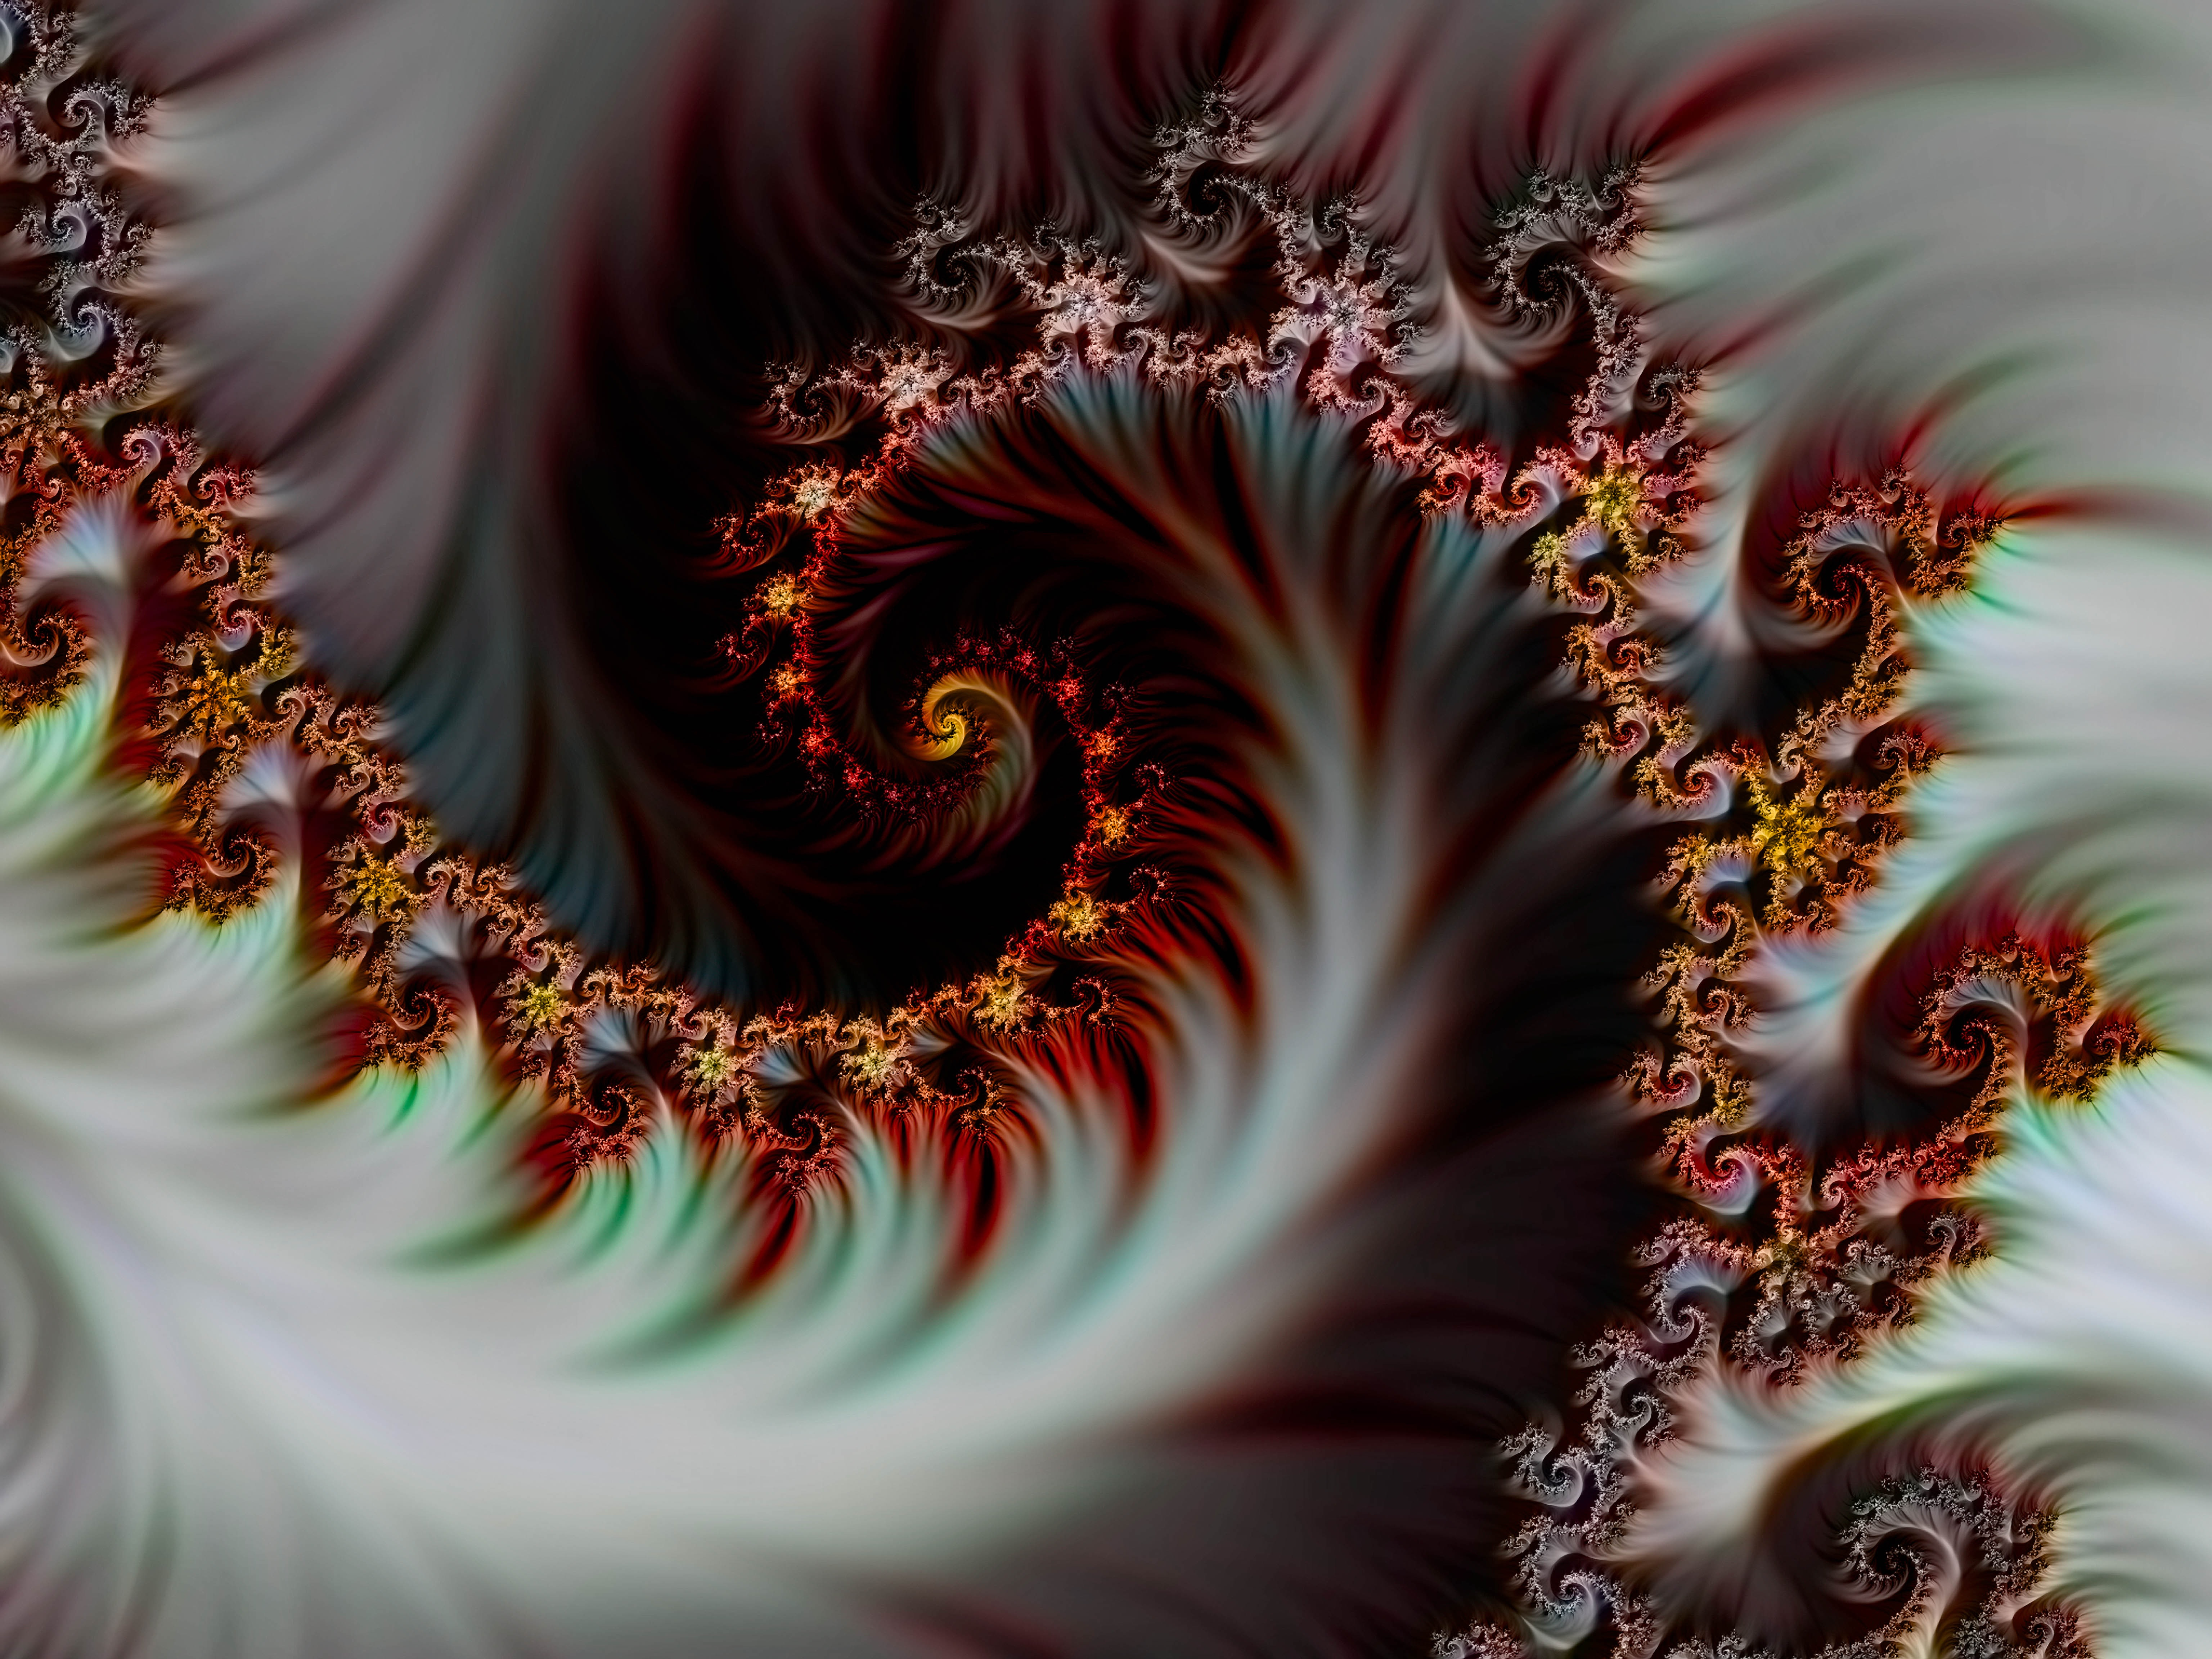 82590 download wallpaper 3D, Fractal, Spiral, Digital Arts, Digital Art, Futuristic, Abstract screensavers and pictures for free